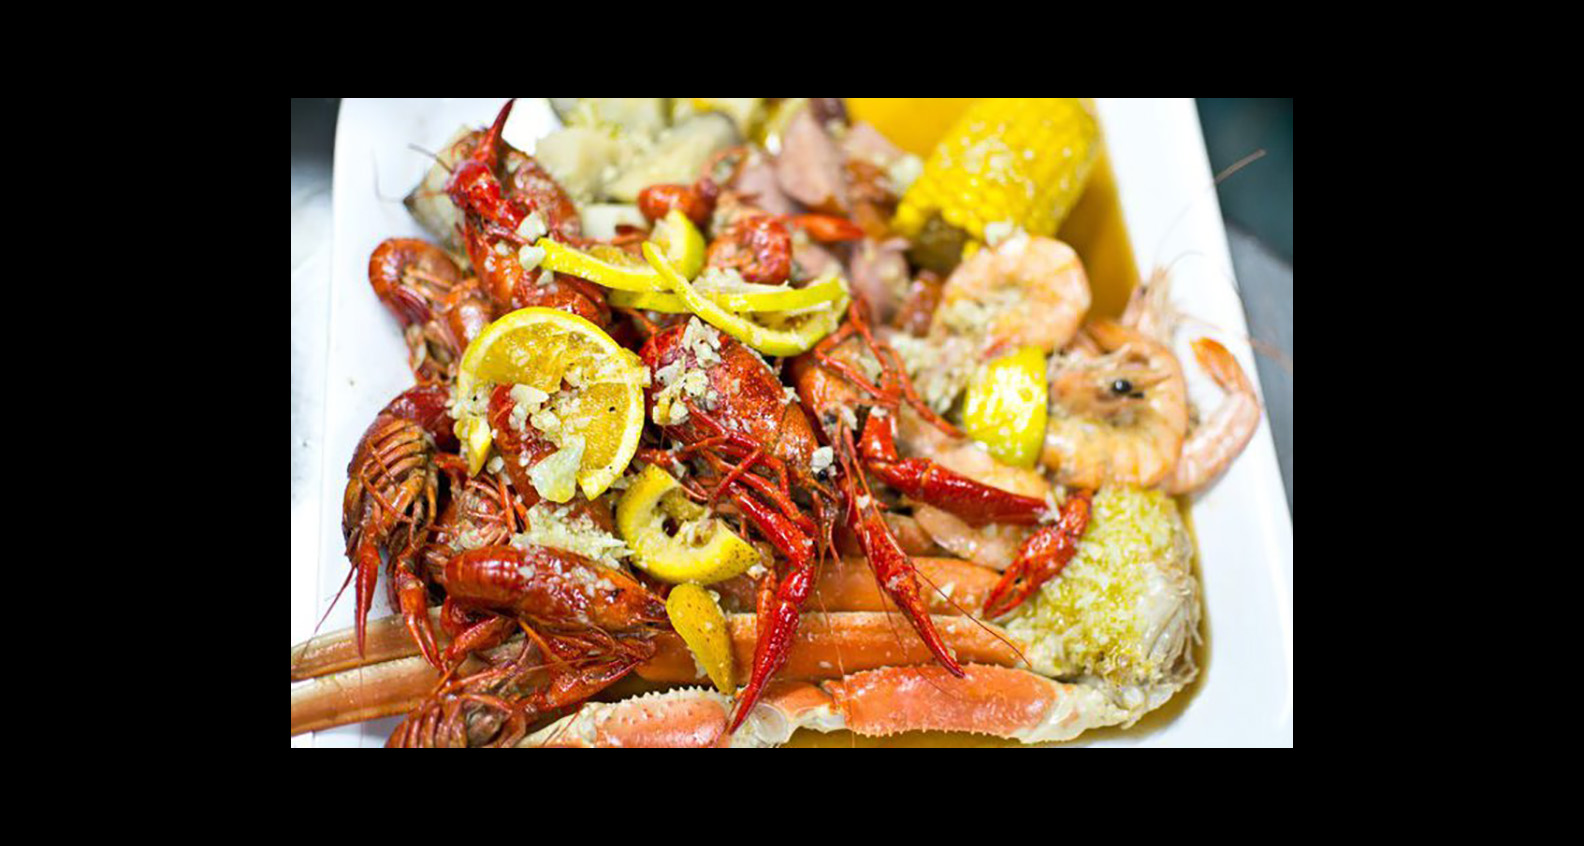 King Cajun Crawfish of Orlando